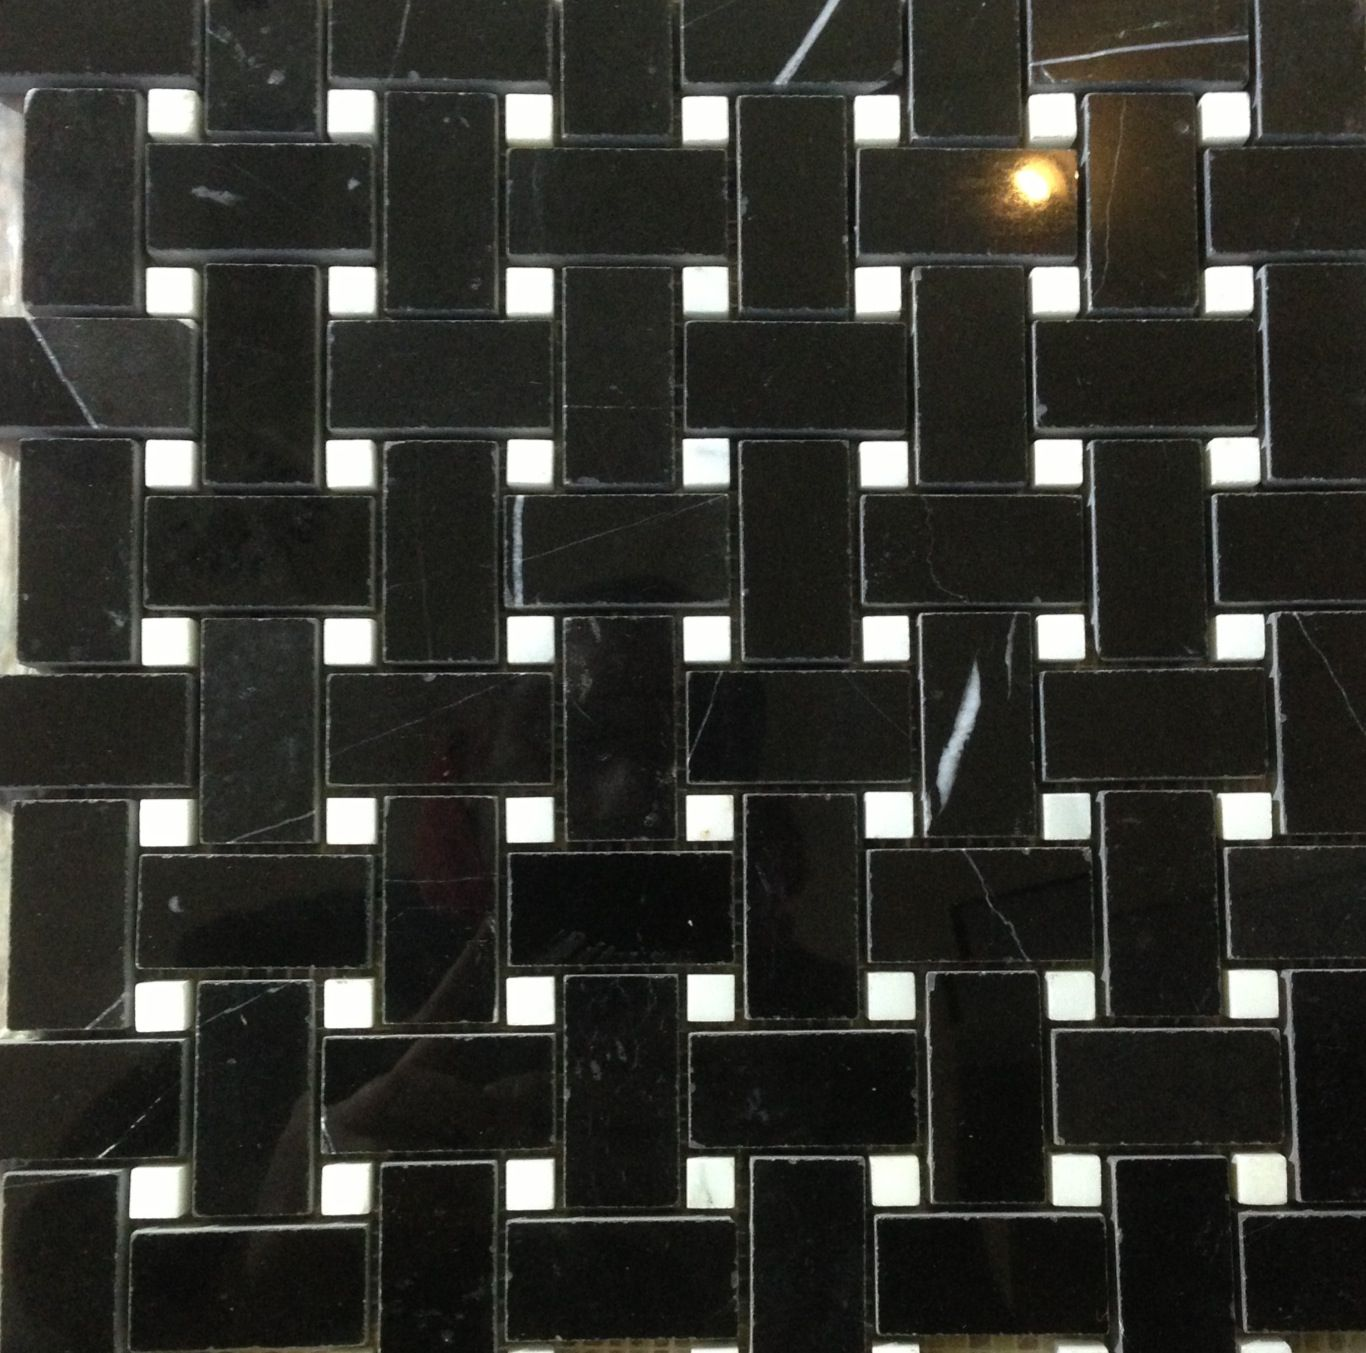 Basket weave, black marble with white dots, in stock $9.95/ sf C-Line marble 2100 Jericho tpk New Hyde Park, NY 516-742-8886